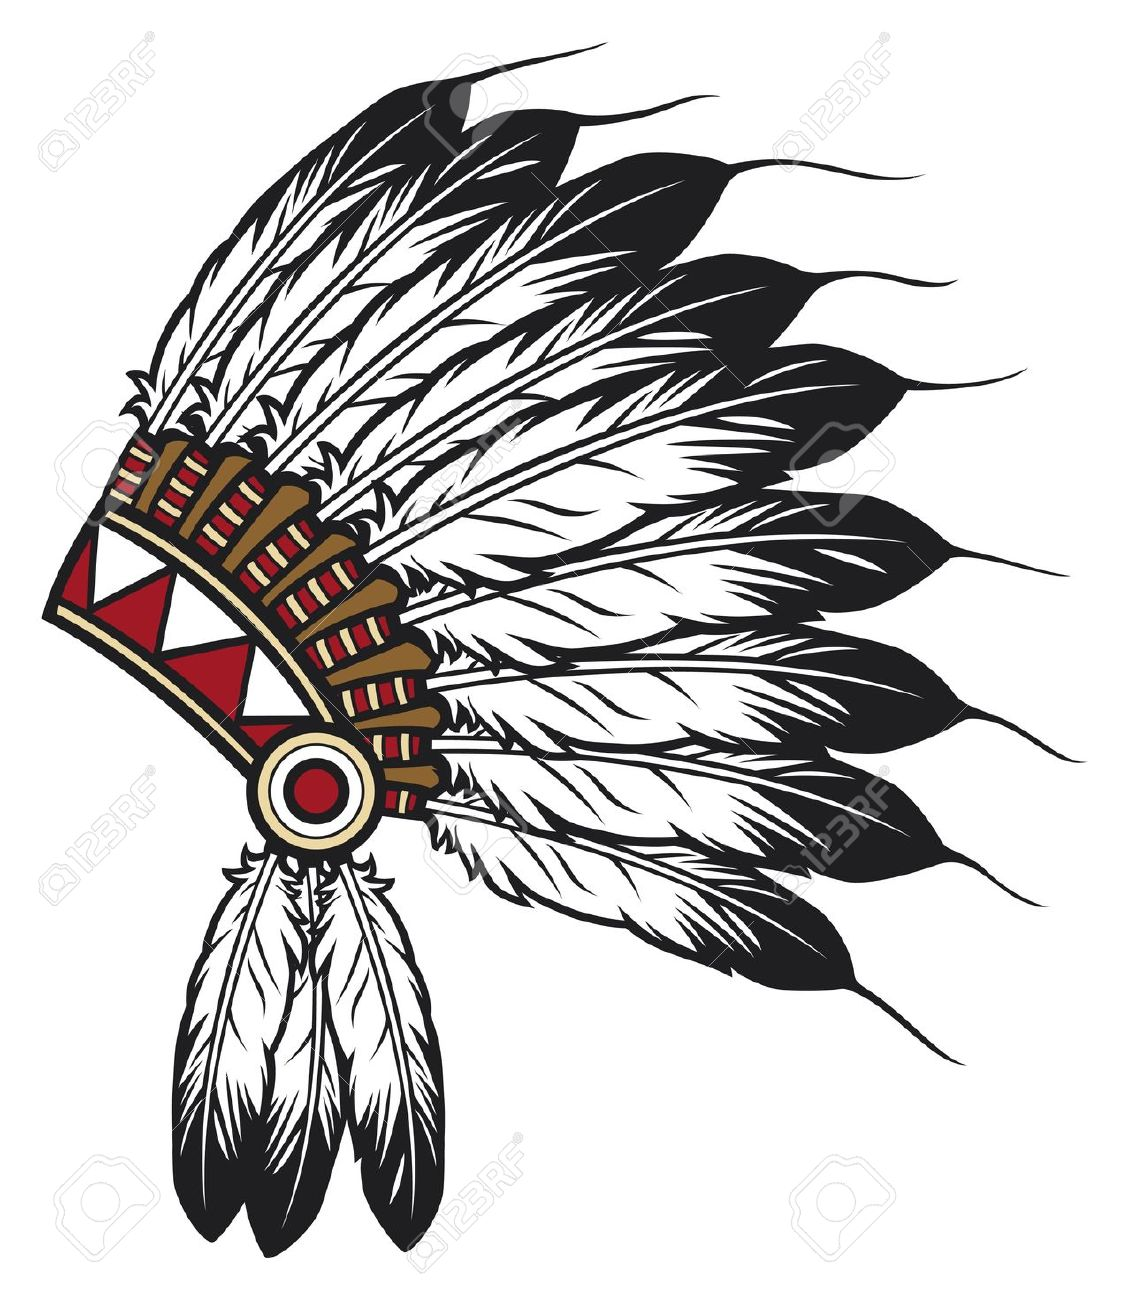 Indian Head Dress Png - Download Indian Headdress Transparent Image Clipart PNG Free ...